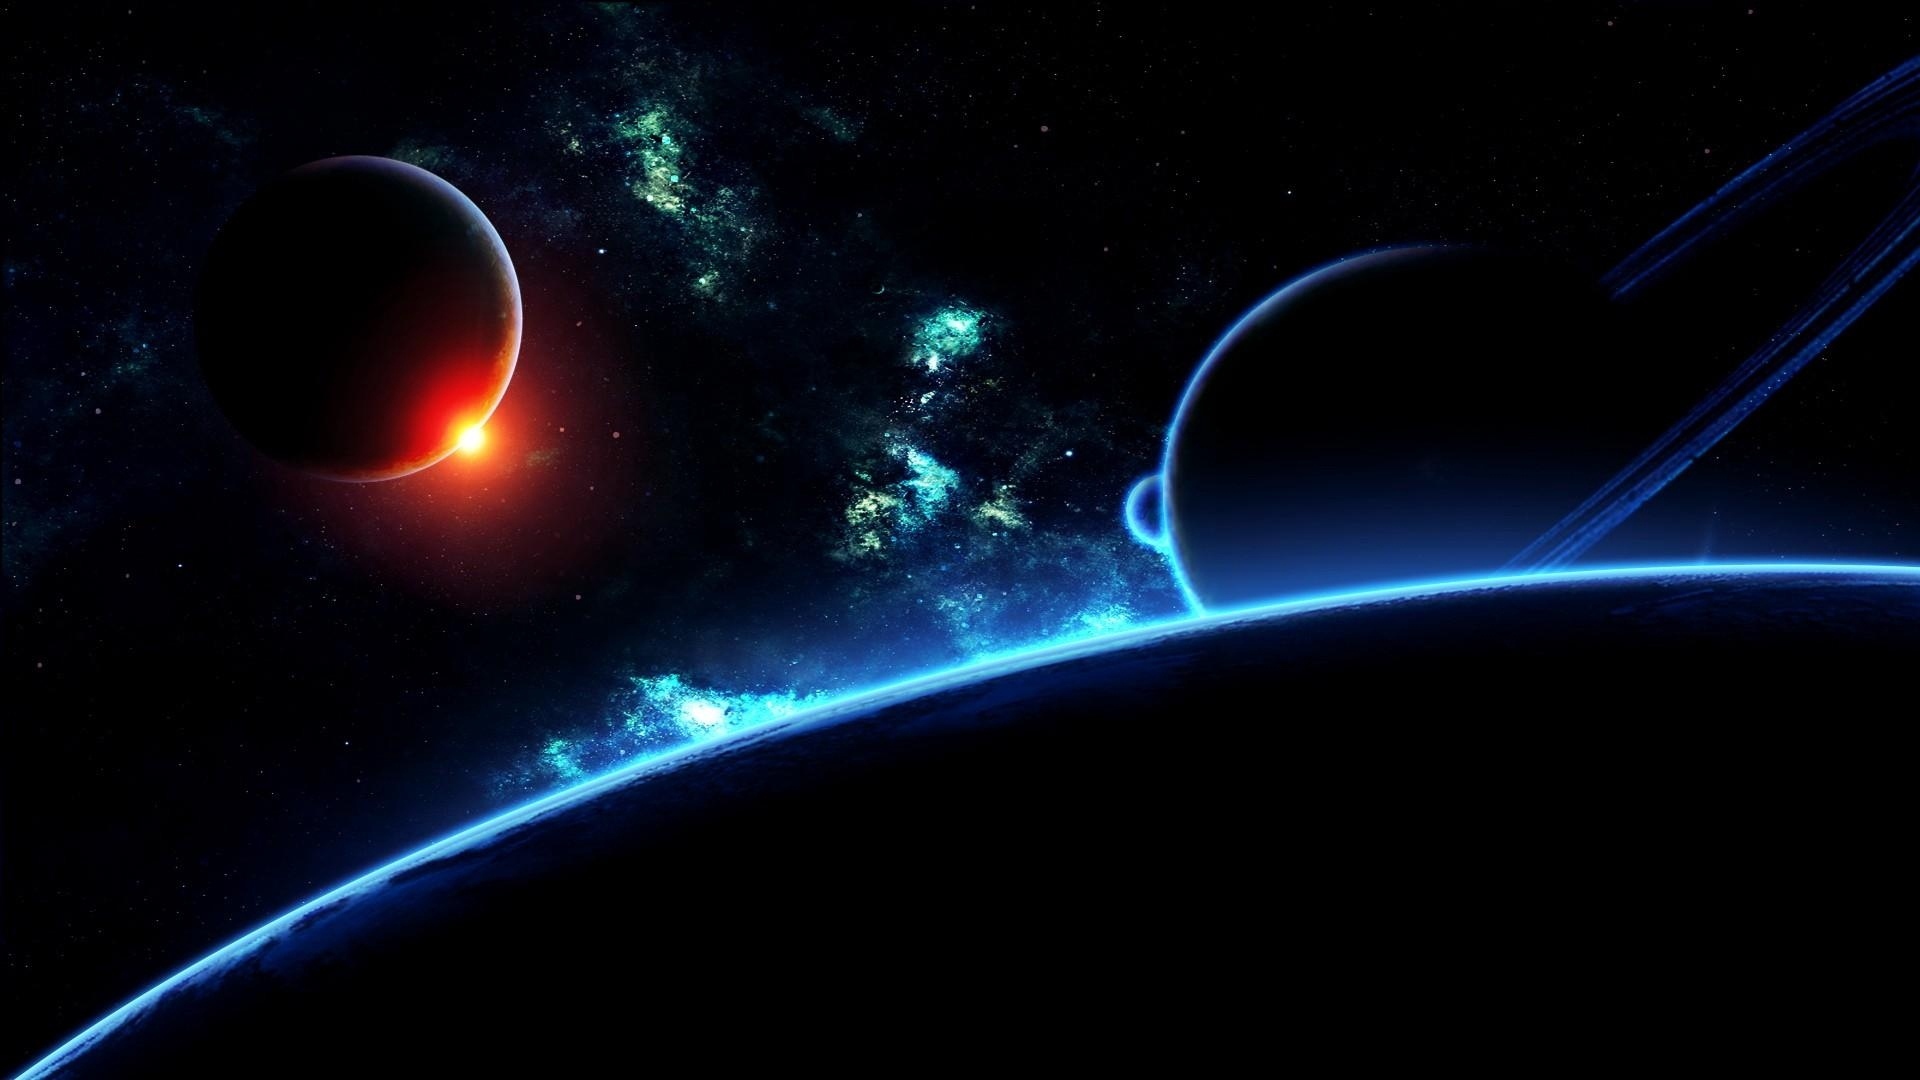 Download wallpaper 1920x1080 planet, universe, galaxy, stars